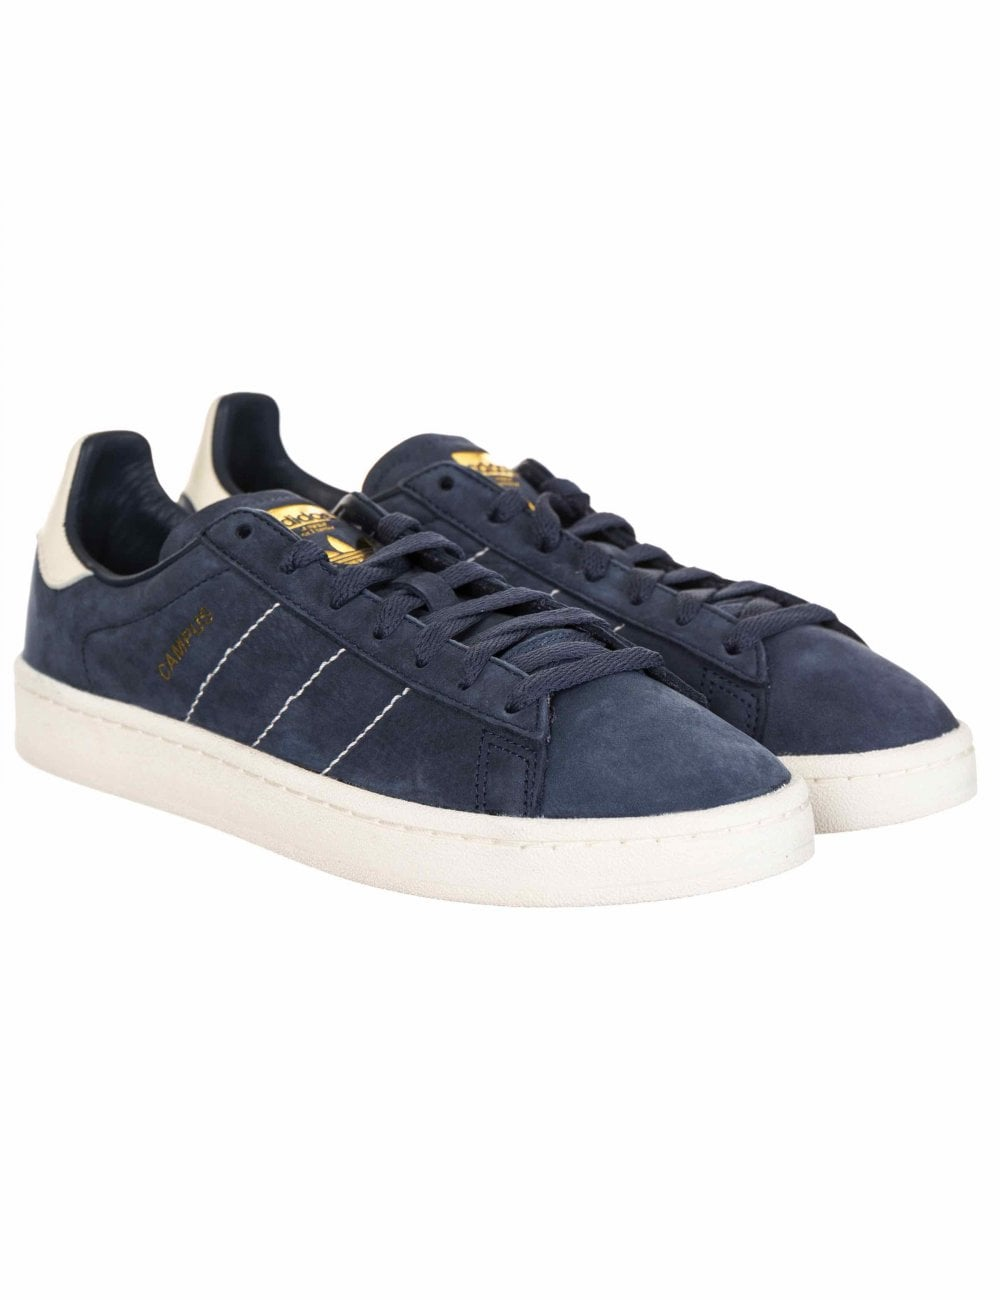 first rate b4241 837bc Adidas Originals Campus Trainers - Trace BlueWhiteGold - Footwear from  Fat Buddha Store UK